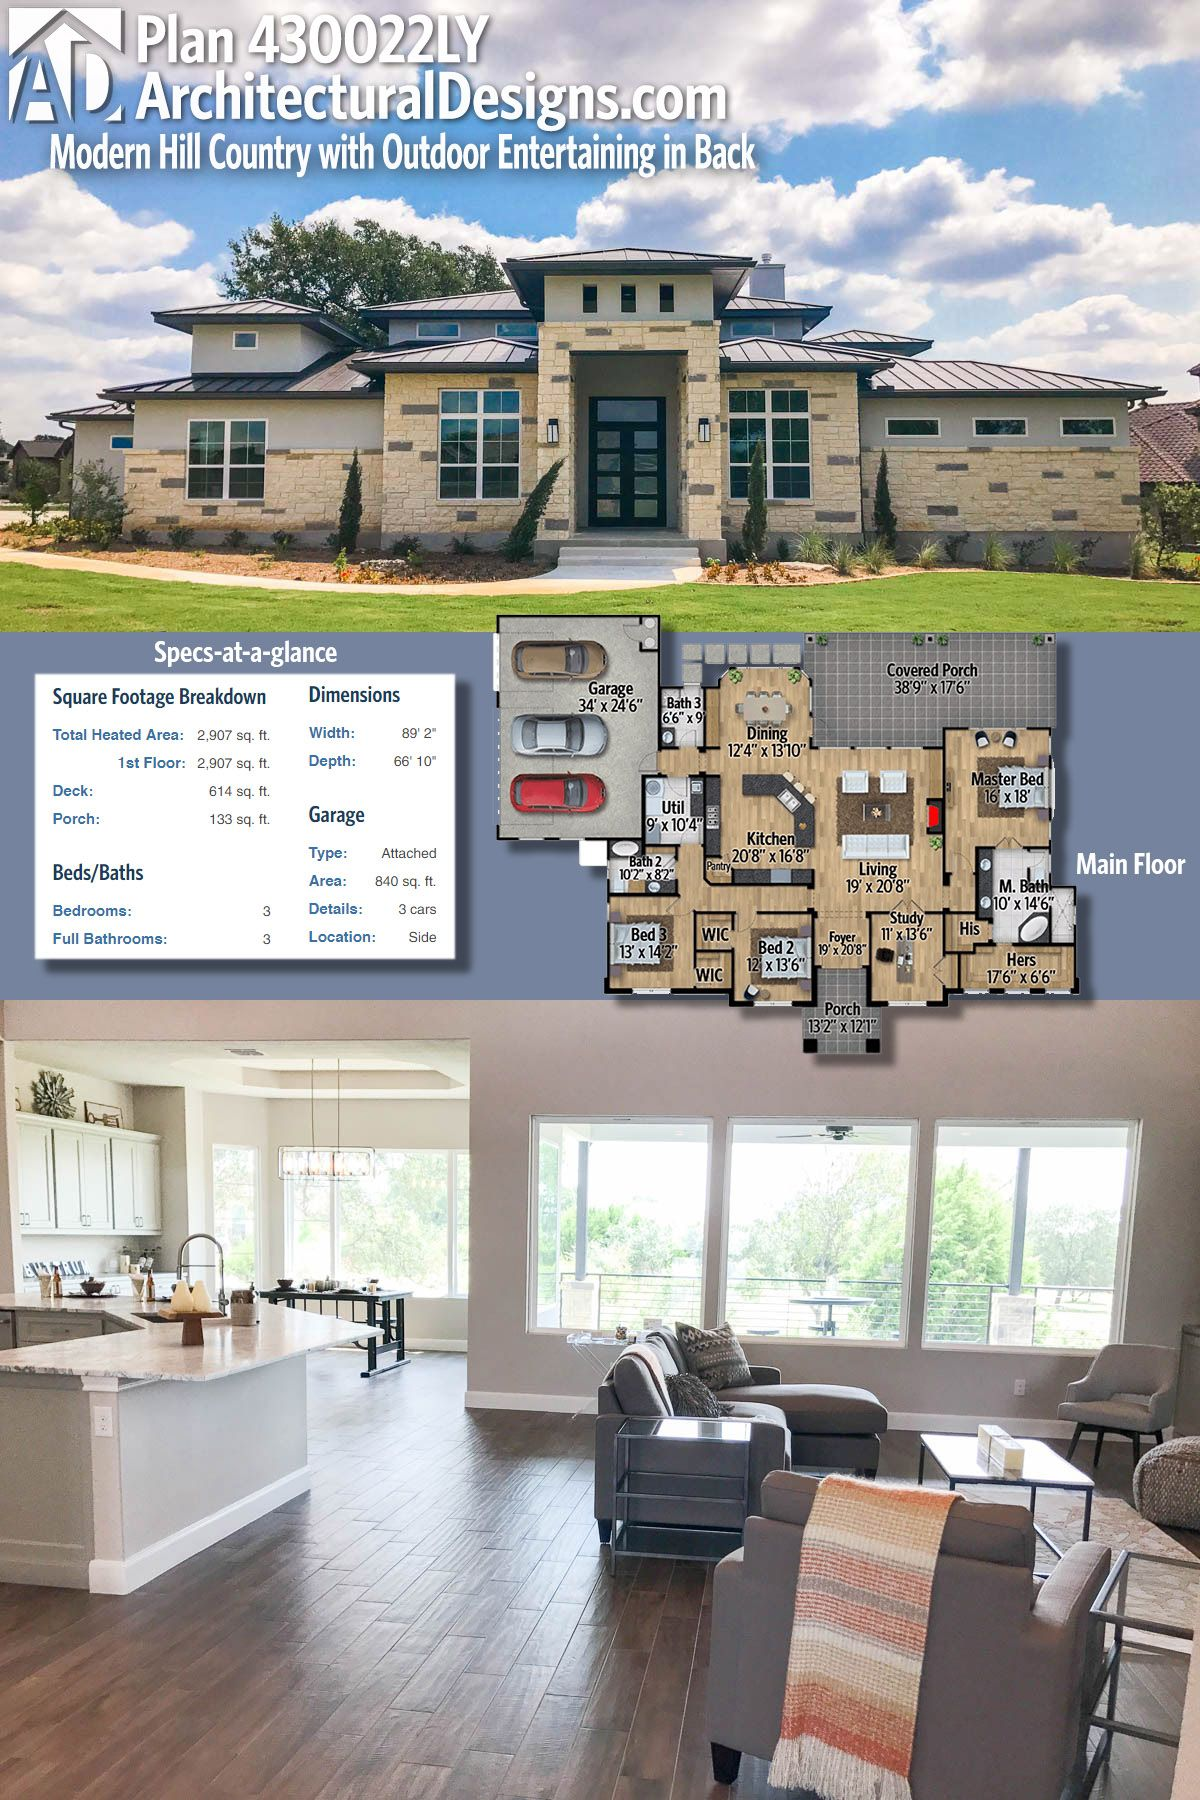 Architectural Designs 3 Bed Modern Hill Country